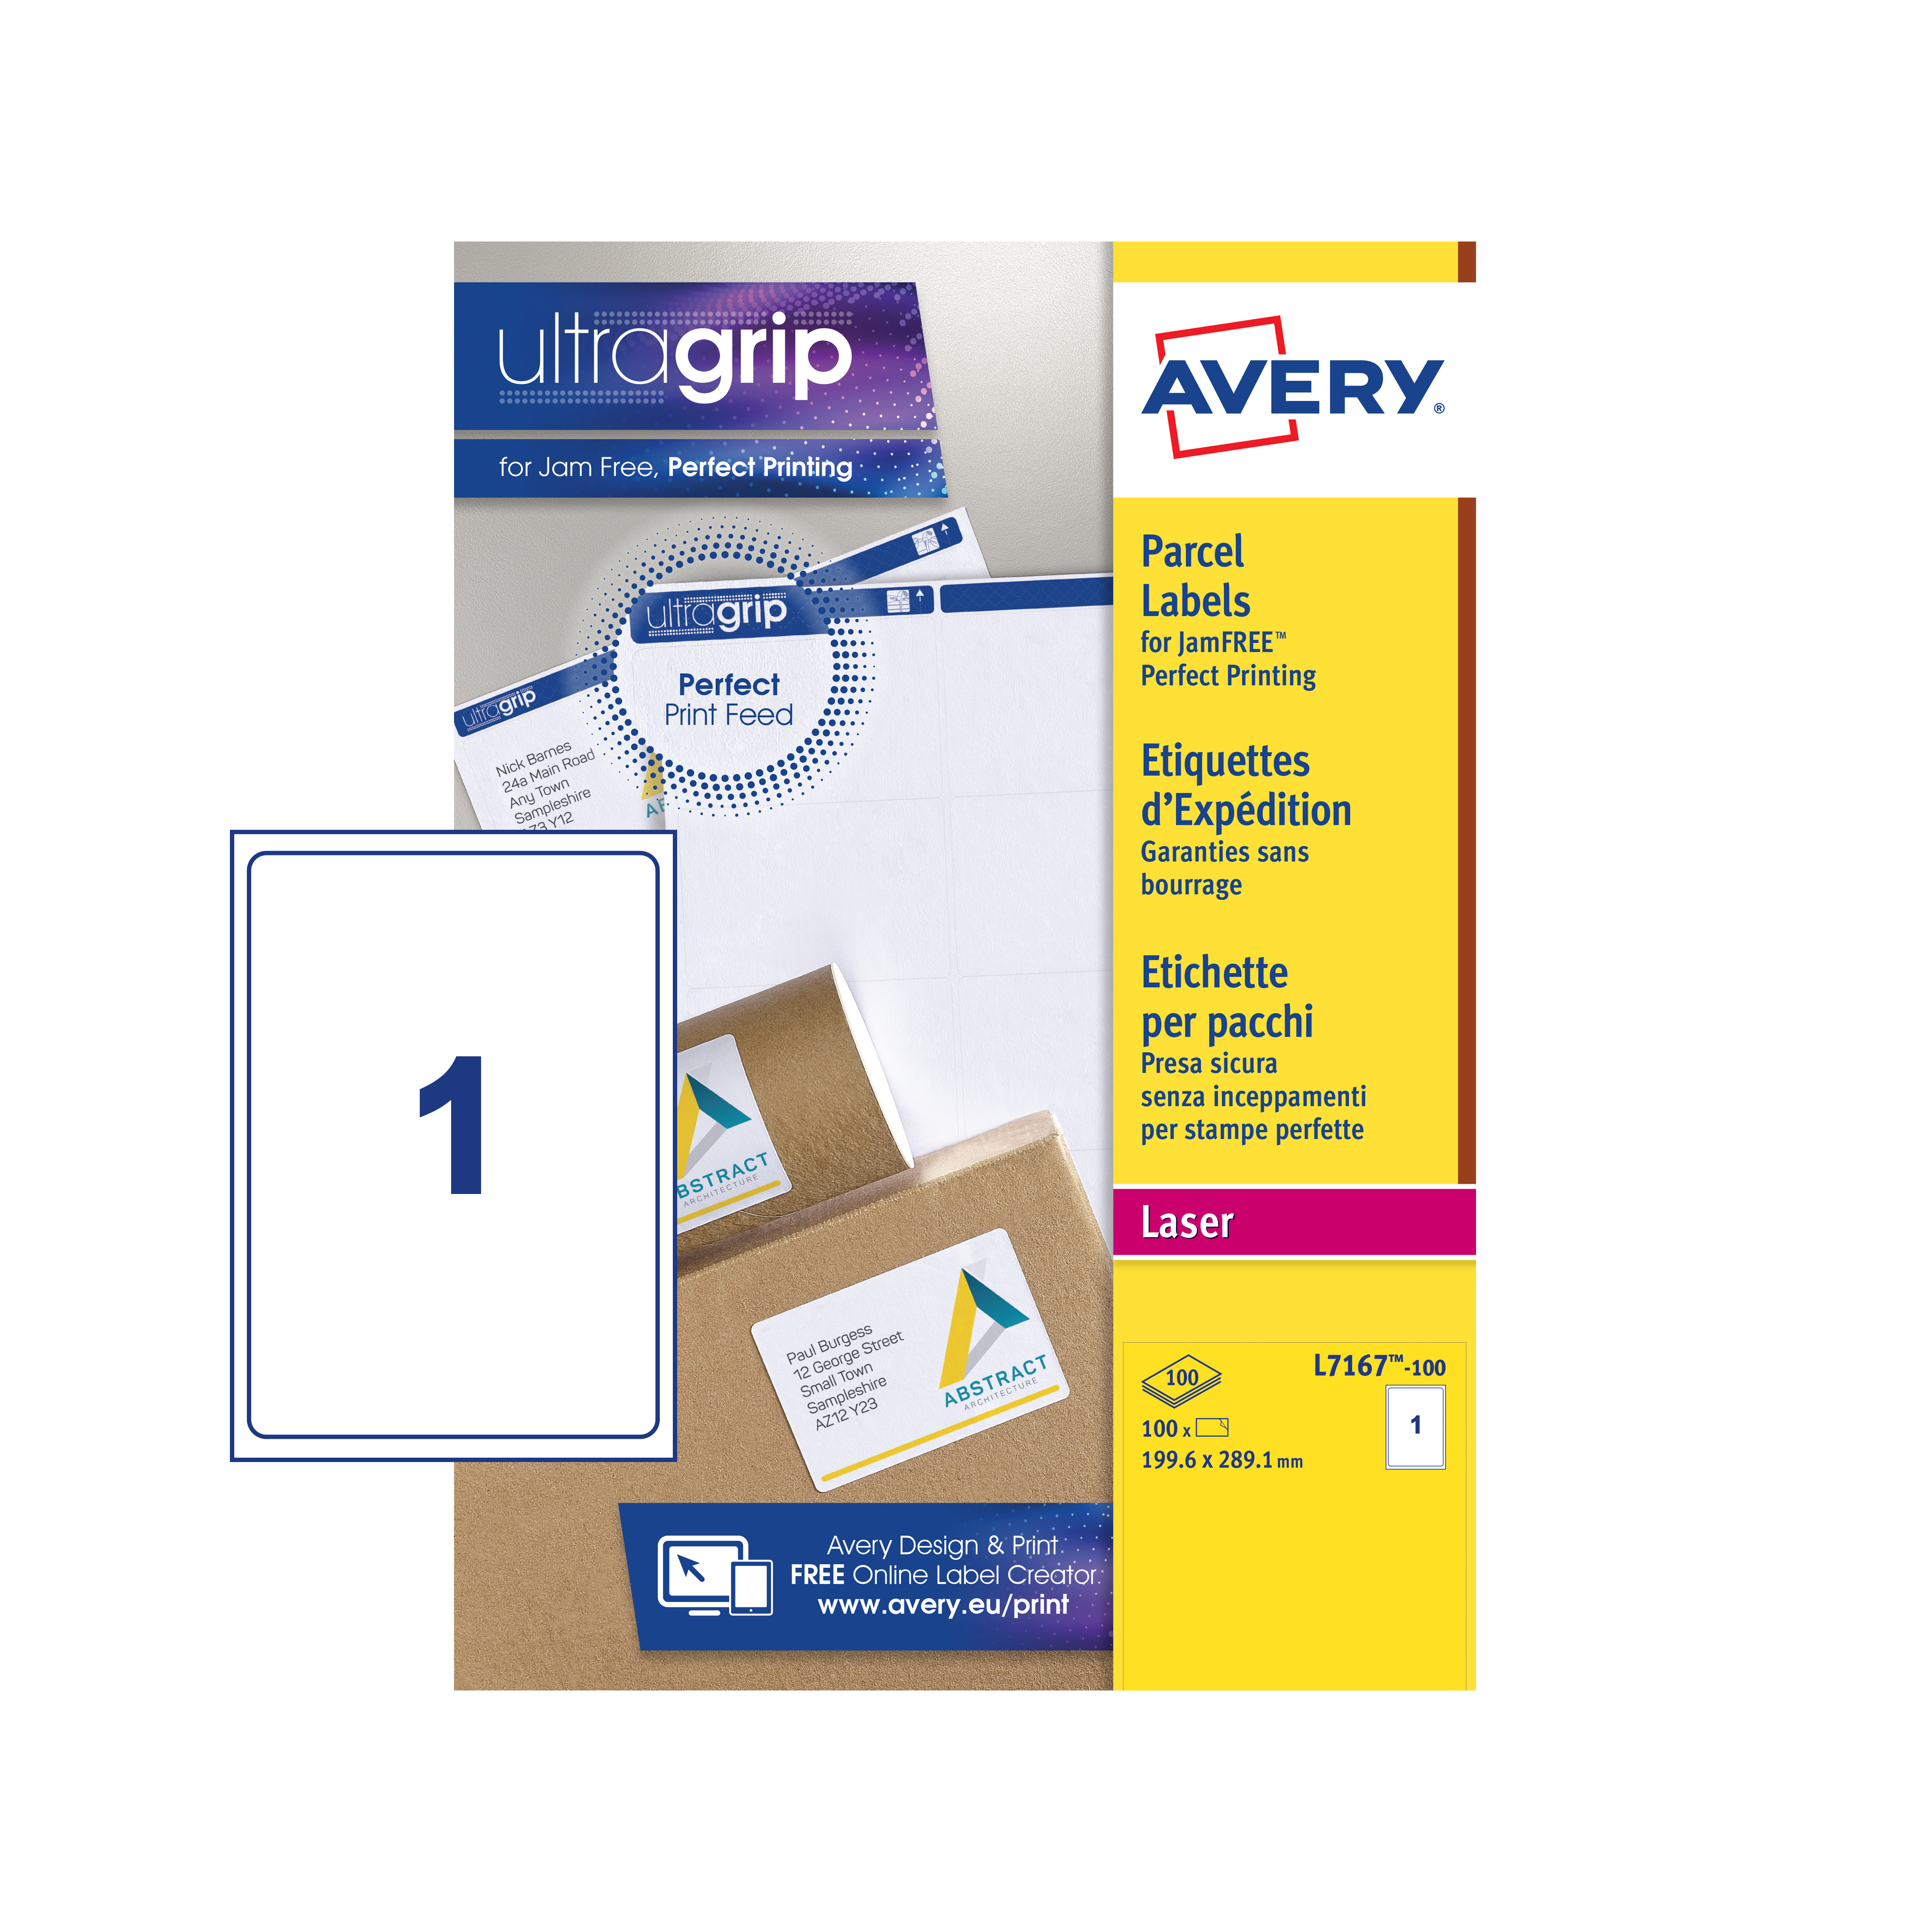 avery parcel labels laser jam free 1 per sheet 199 6x289 1mm opaque